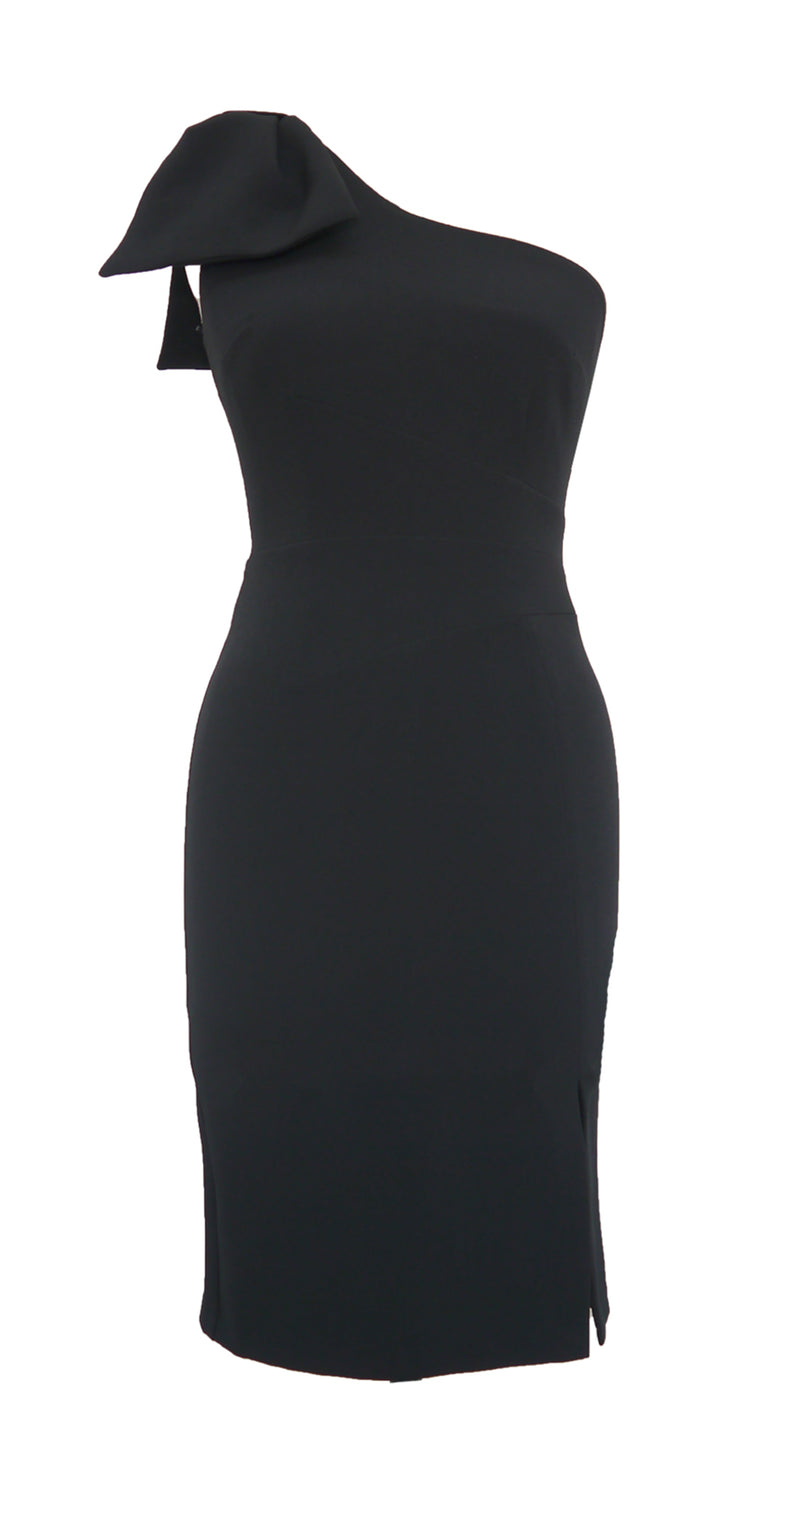 Tessa Dress DRC235 Black Crepe